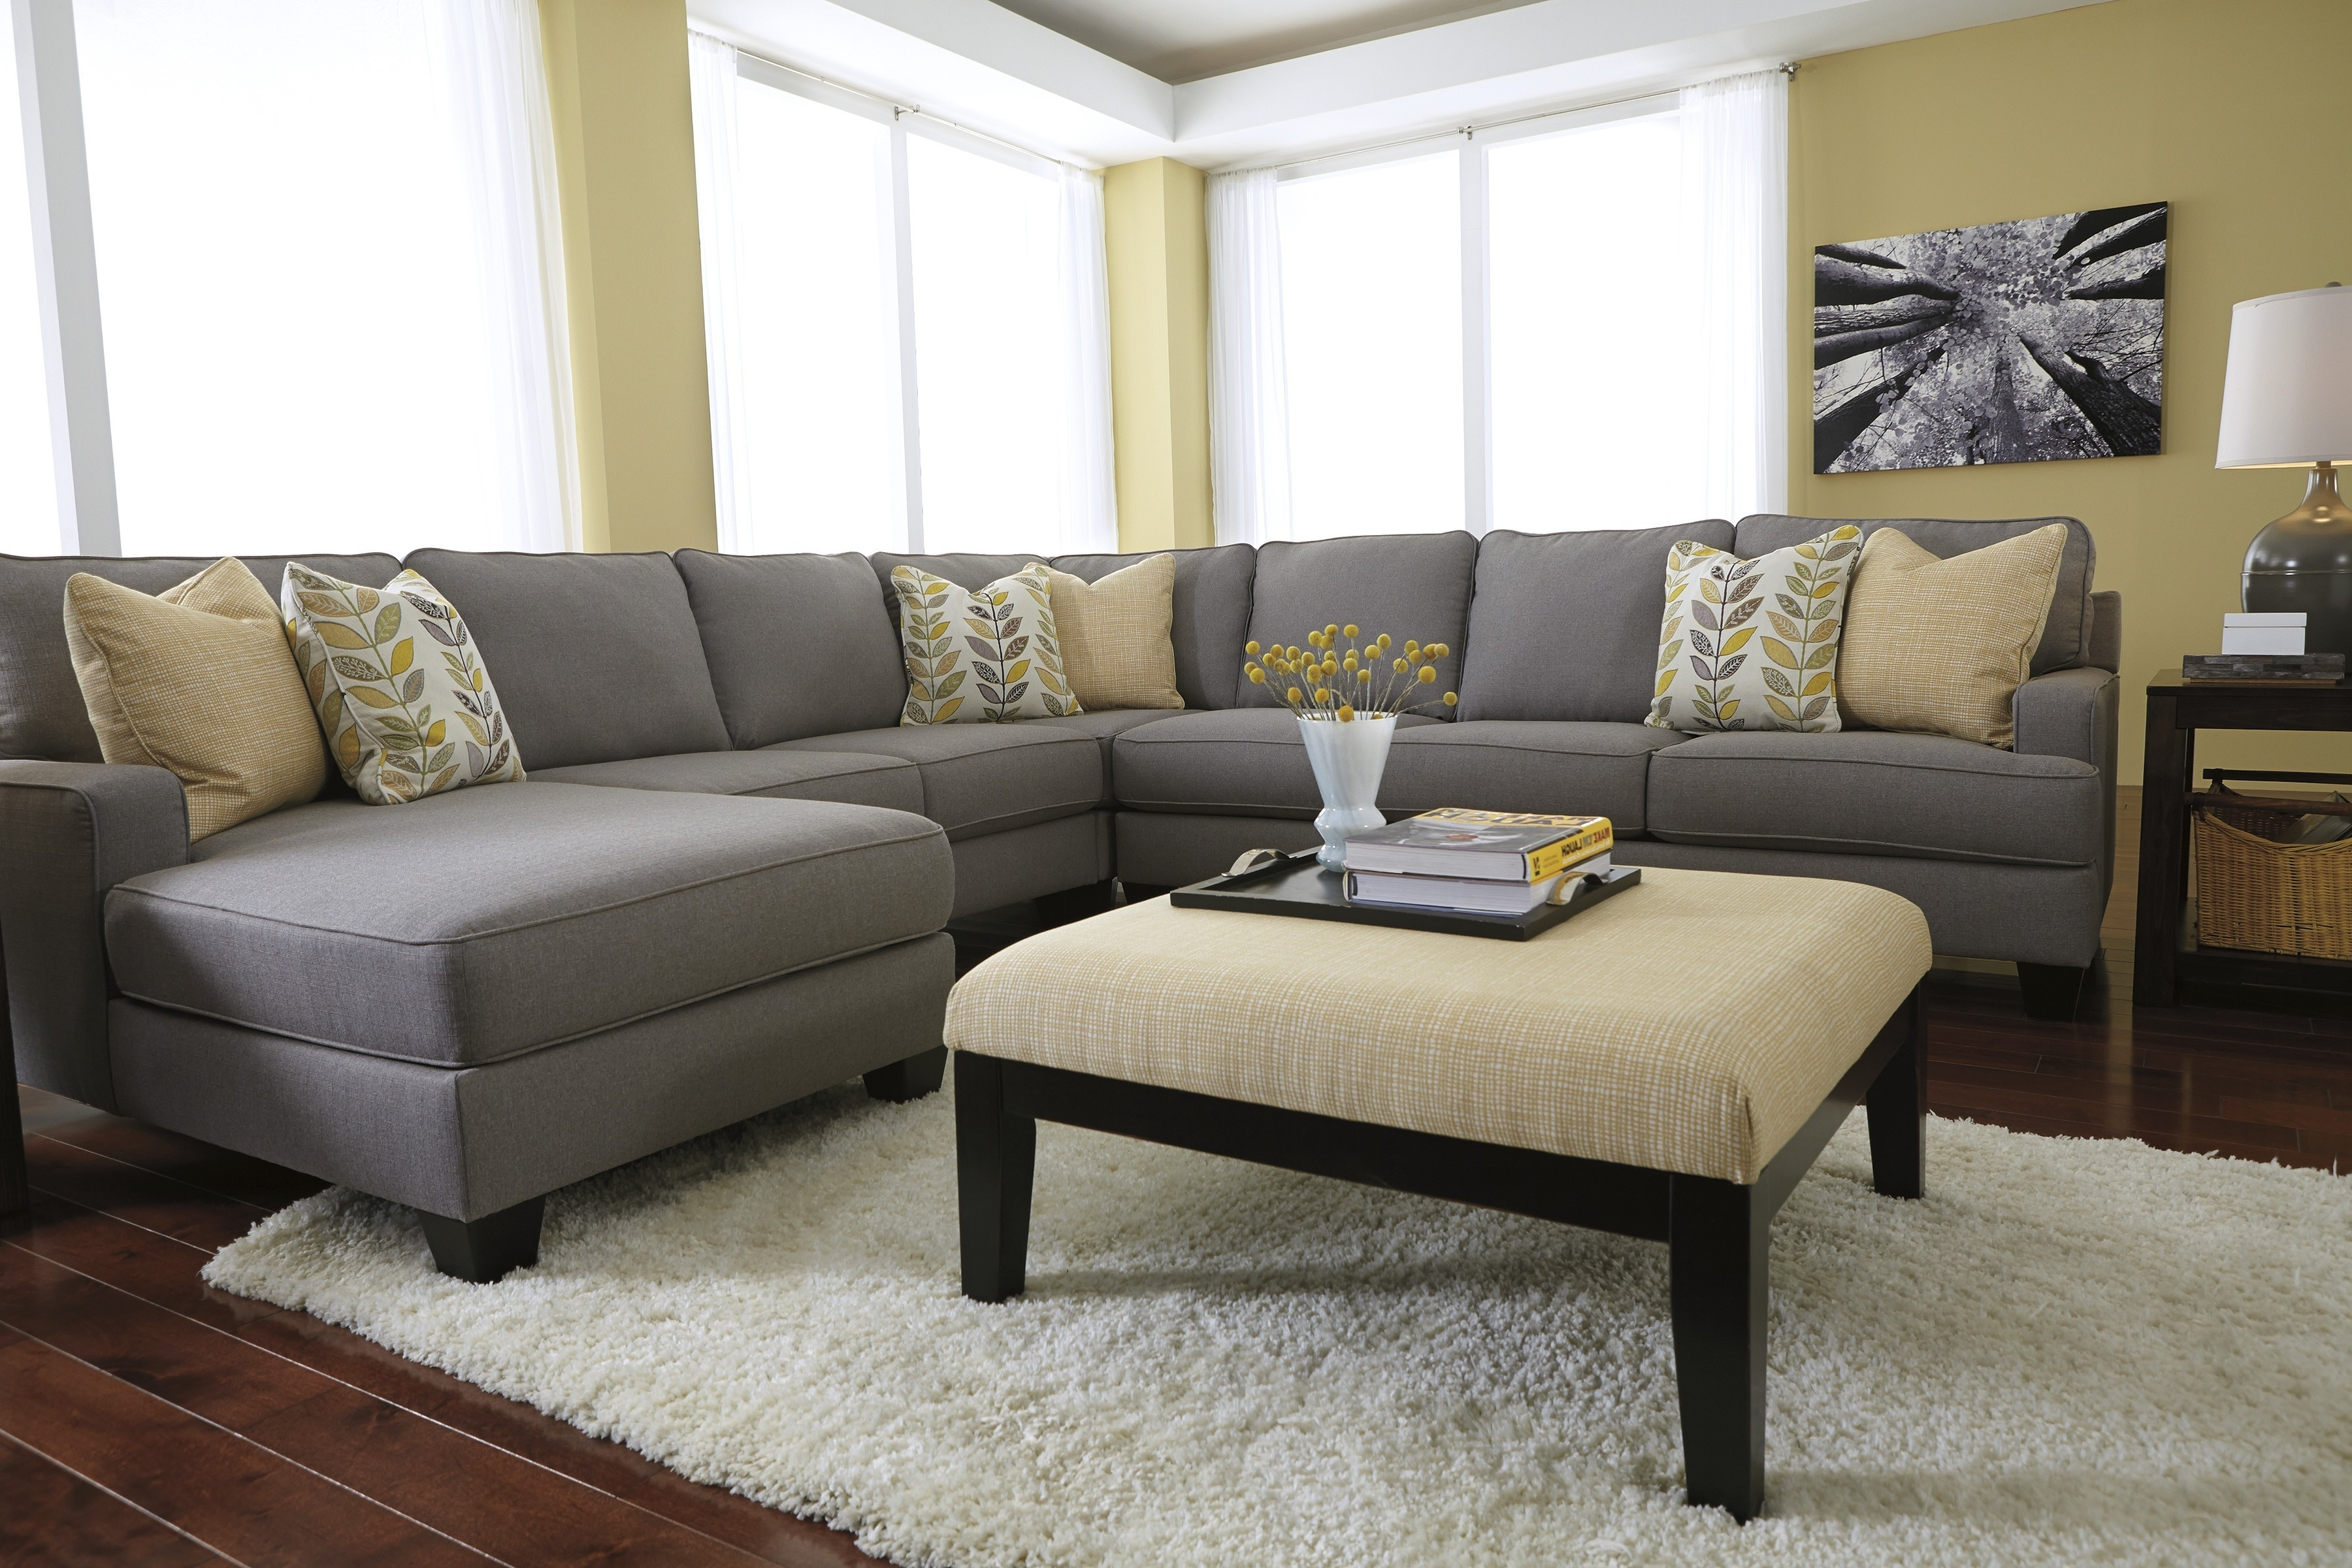 Extra Large Sectional Sofas (View 5 of 15)